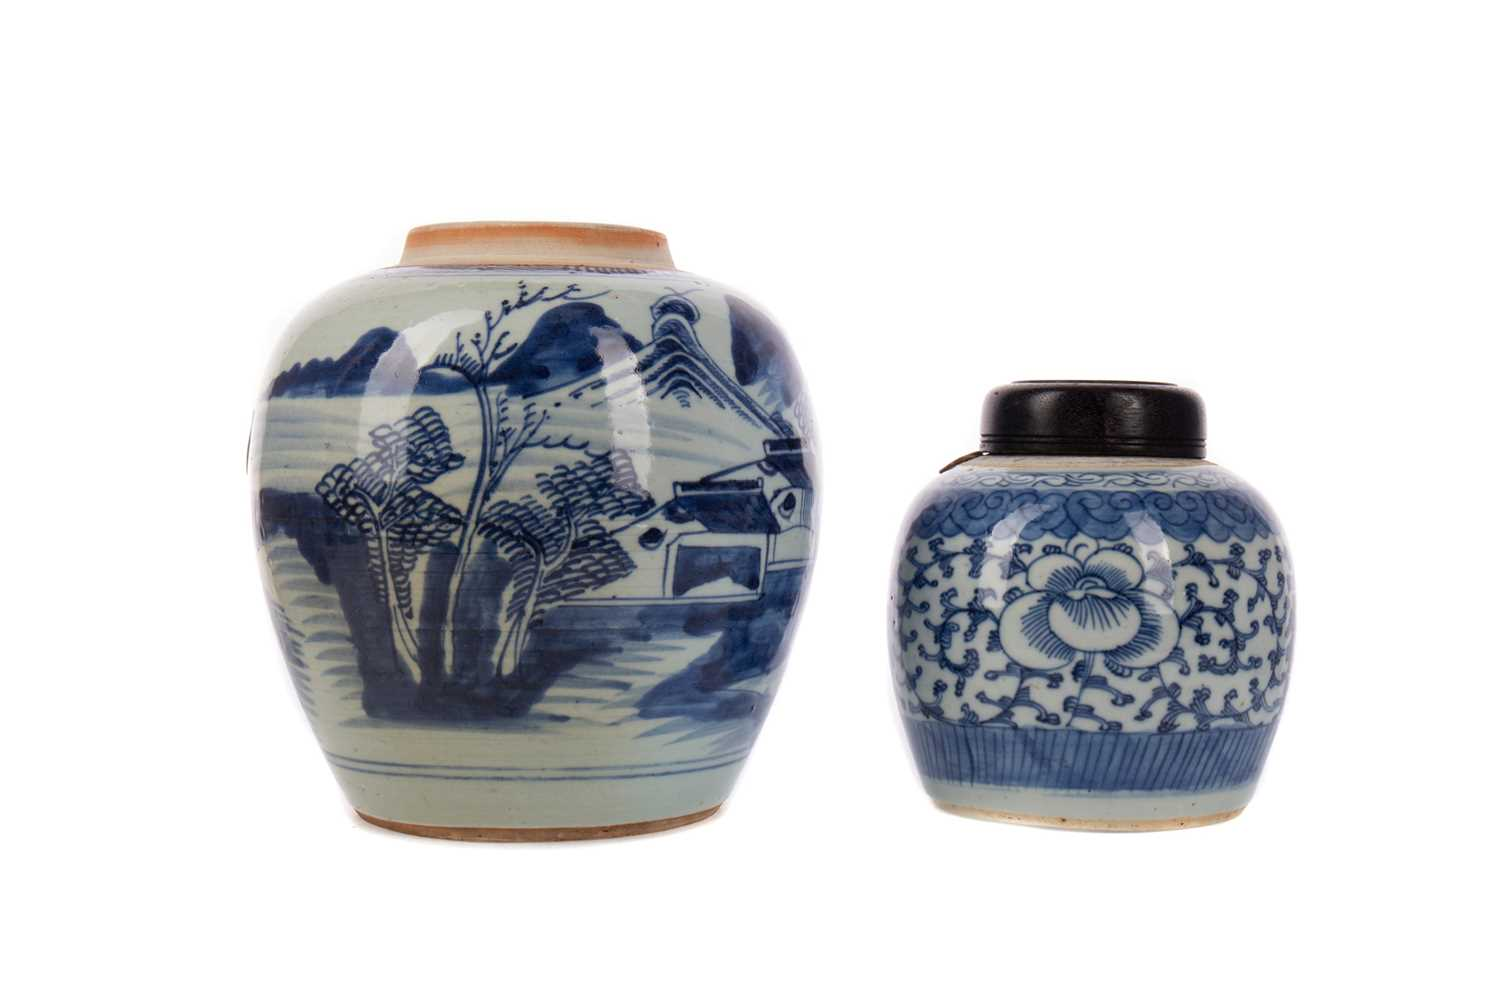 Lot 1625 - A 20TH CENTURY CHINESE BLUE AND WHITE JAR, ANOTHER JAR AND A BOWL